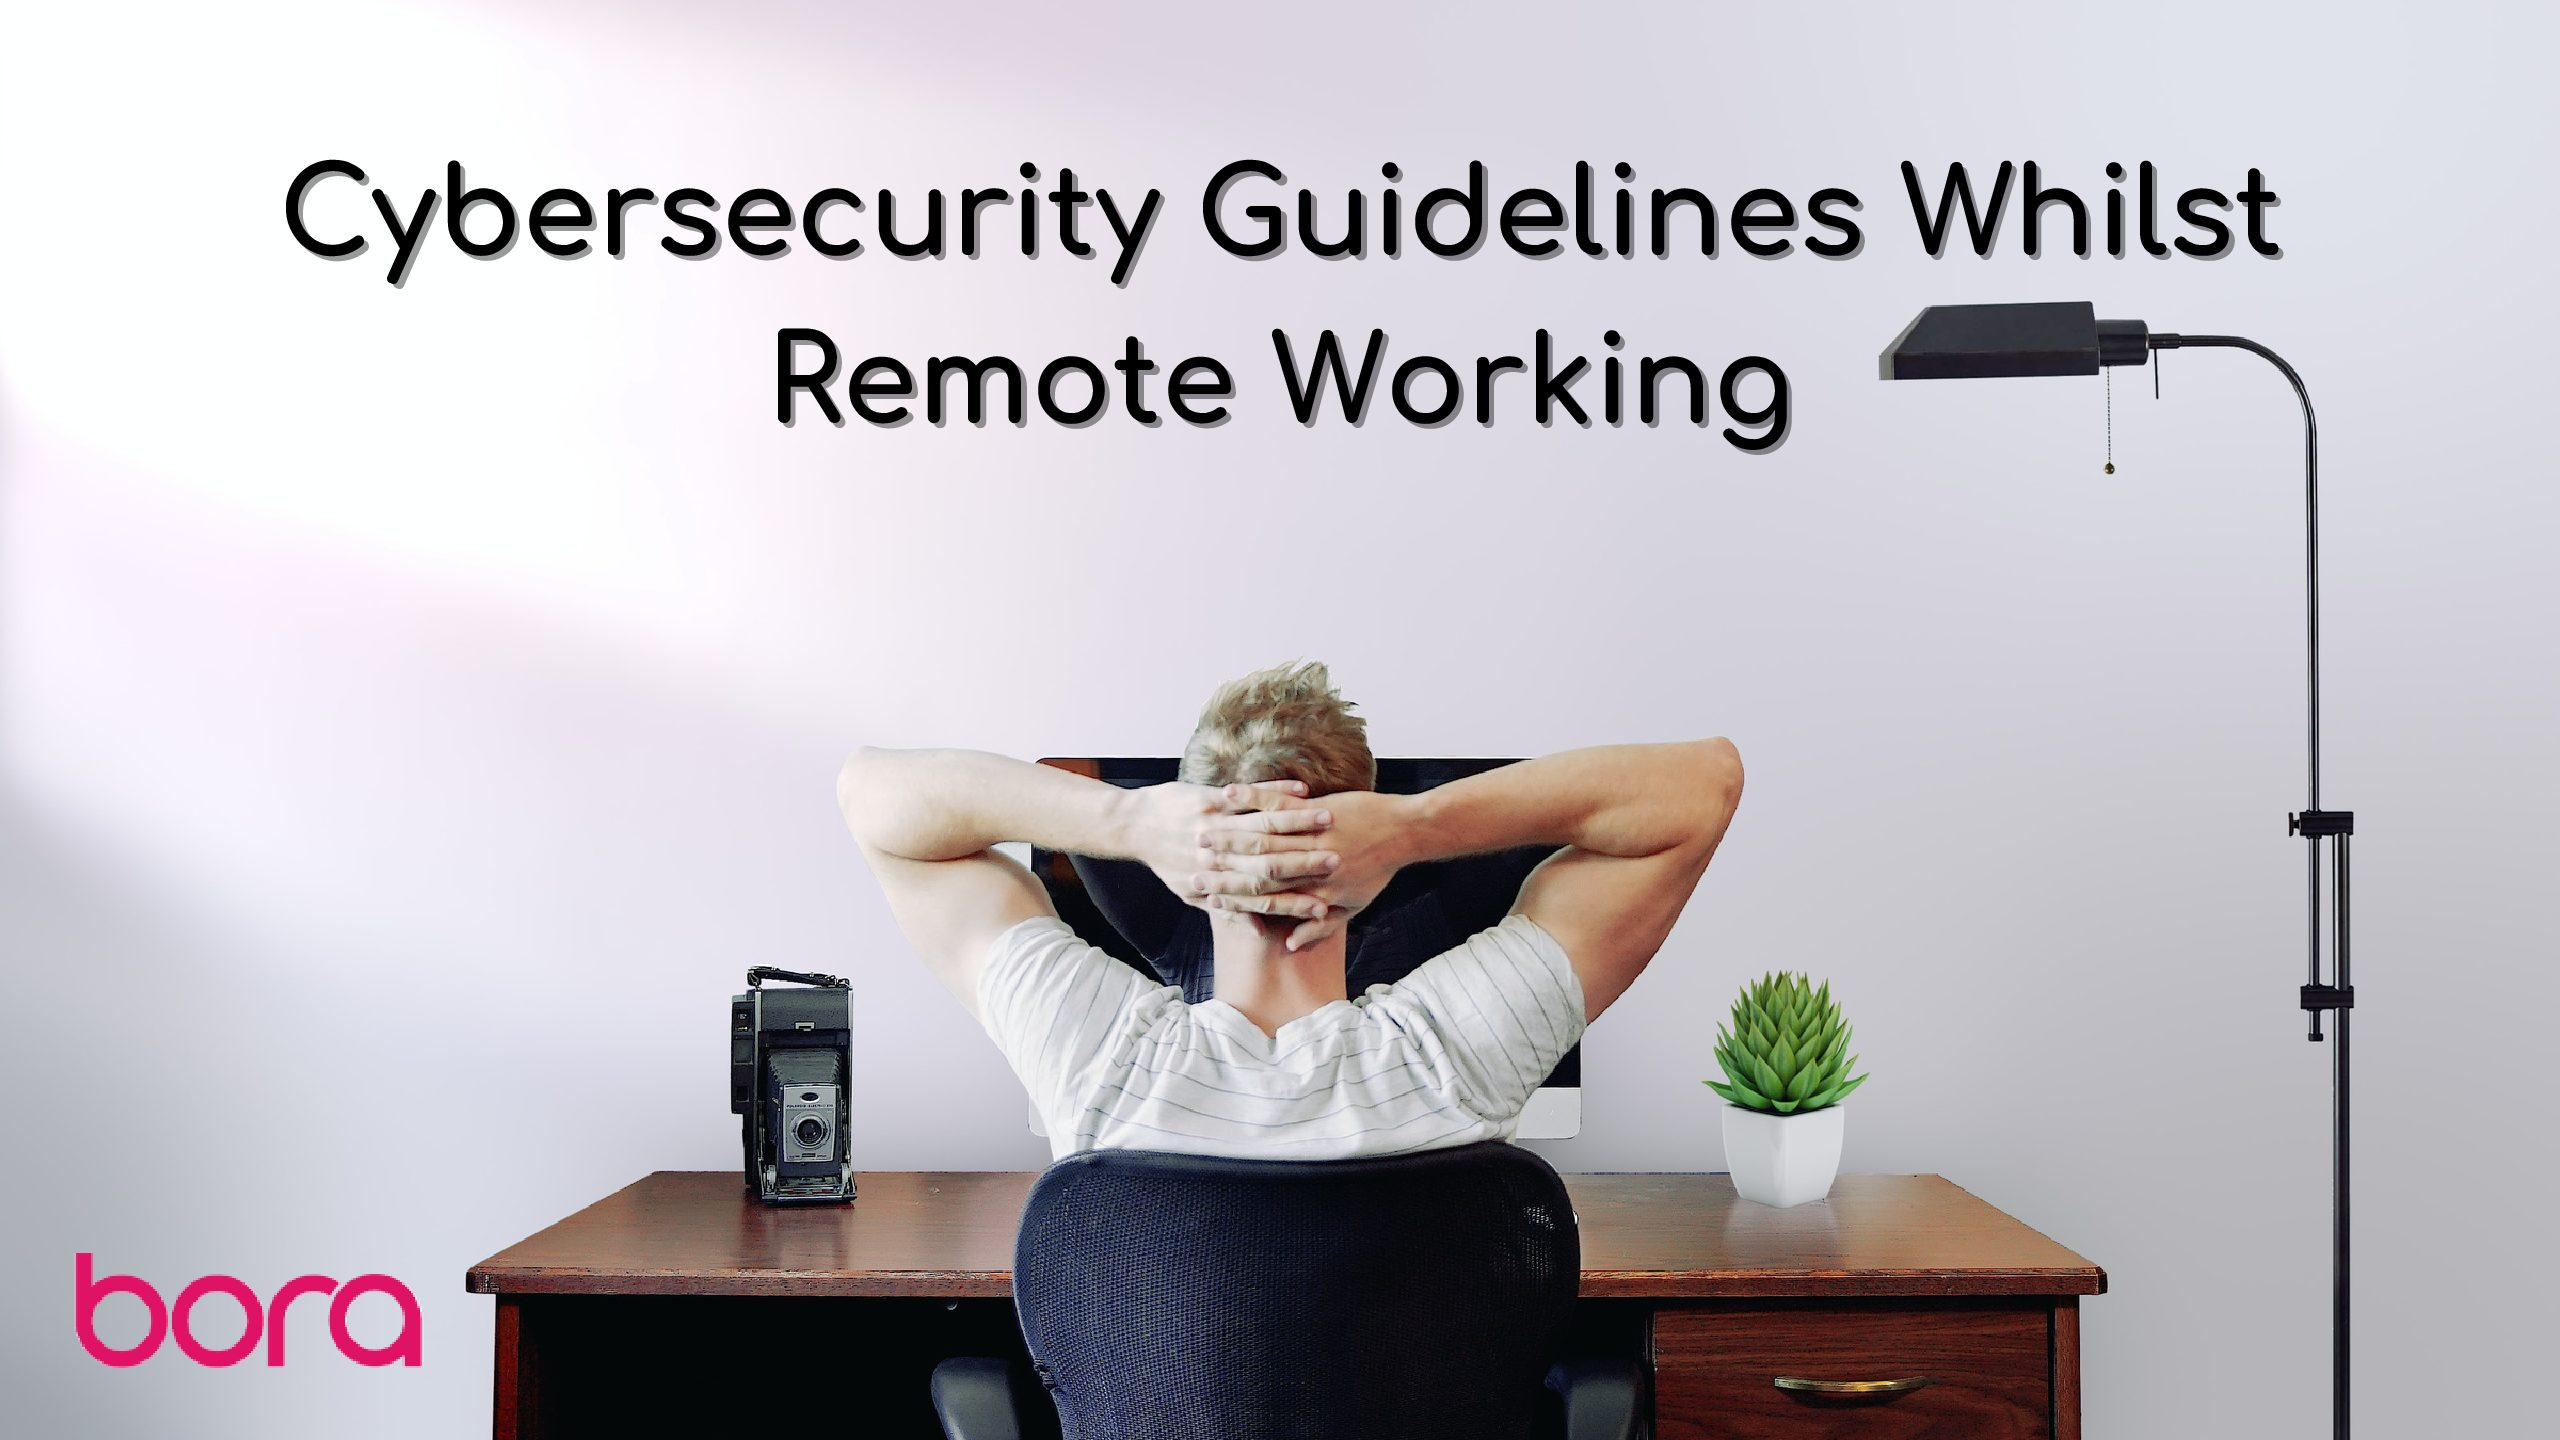 Cybersecurity Guidelines Whilst Remote Working